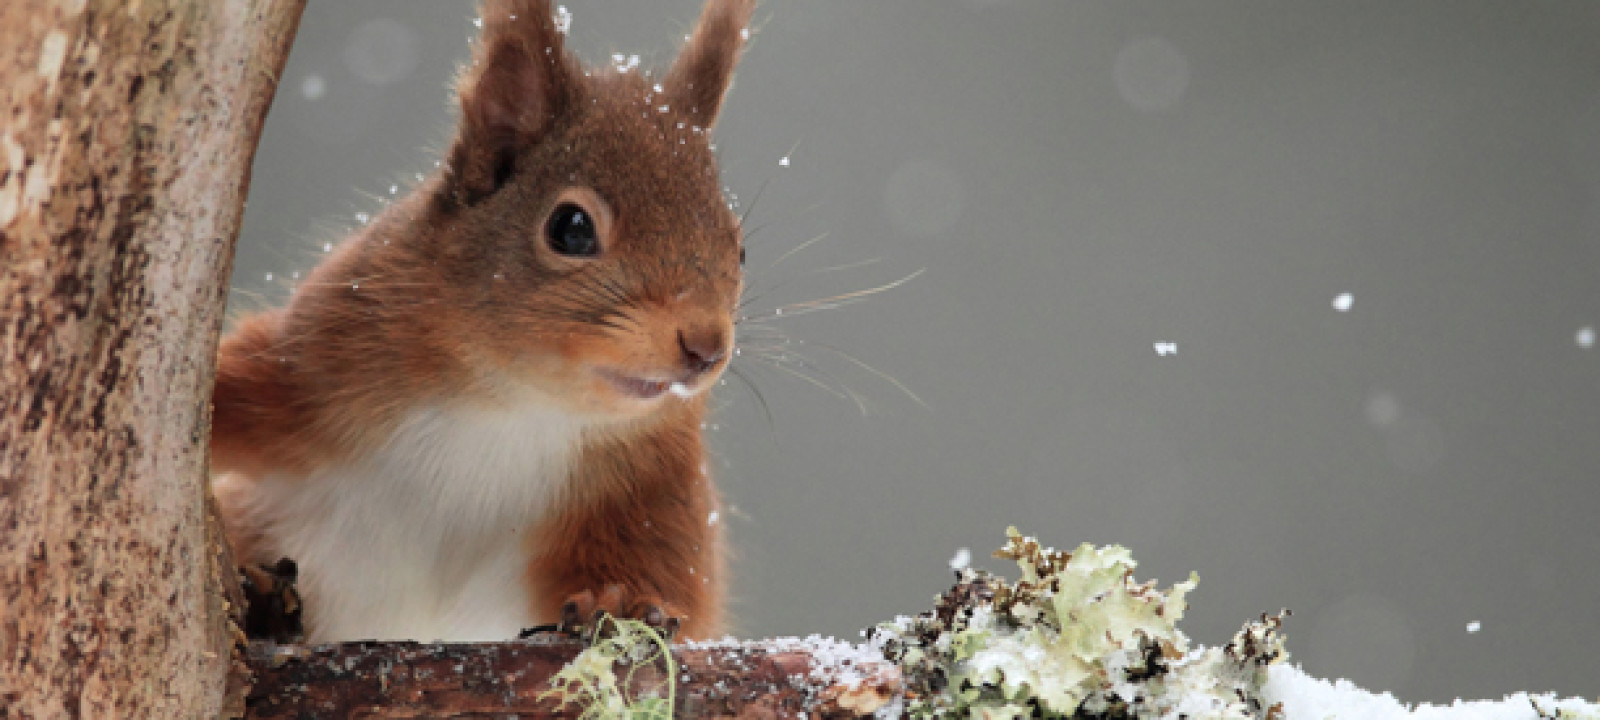 612x344_redsquirrel